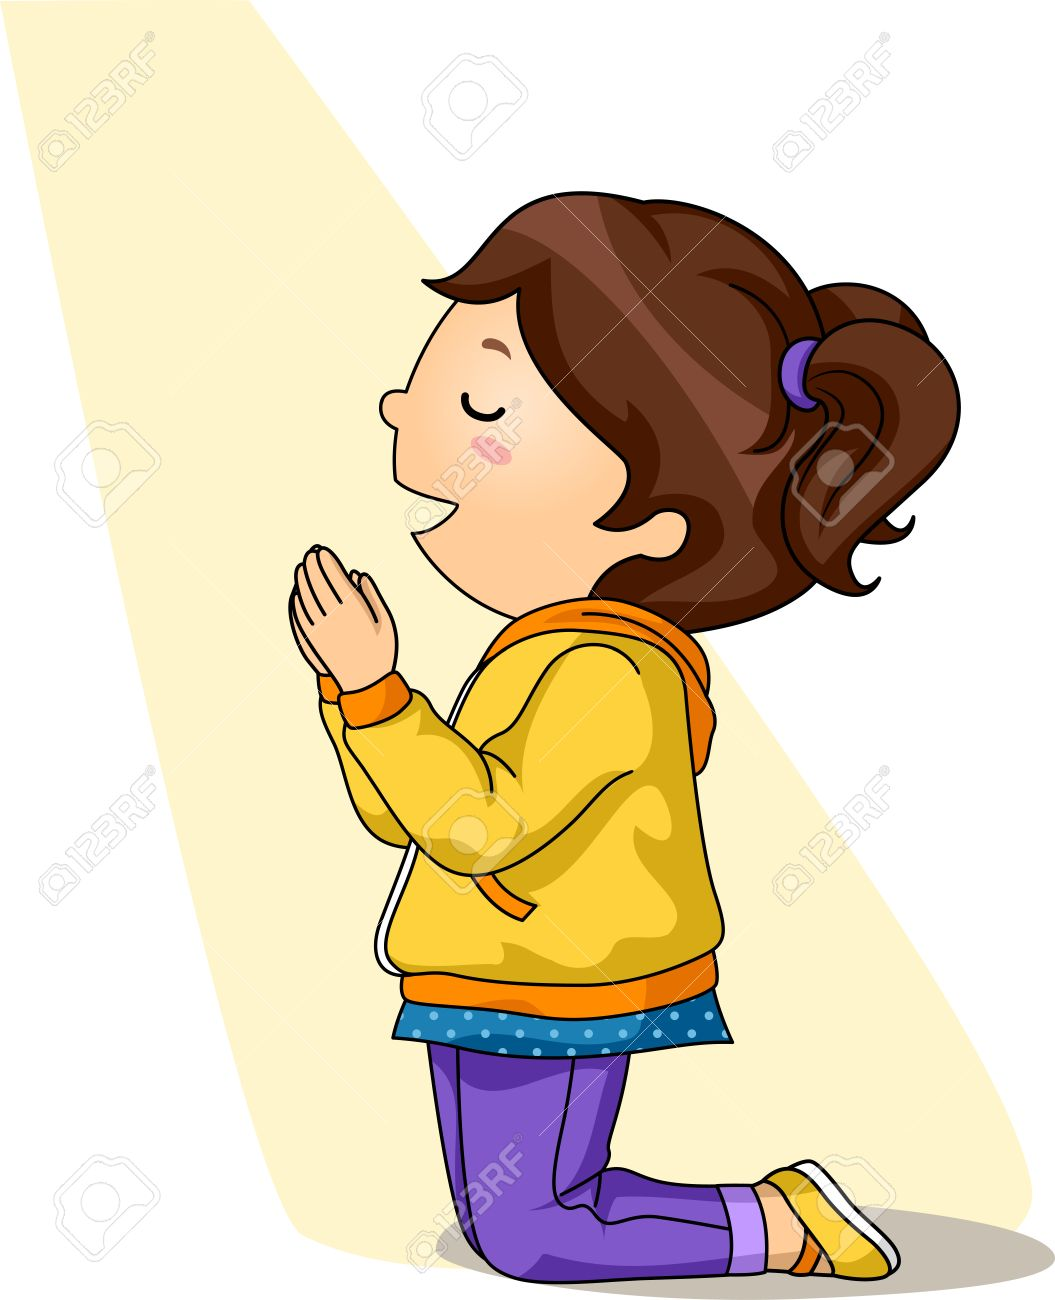 563 Child Praying Stock Vector Illustration And Royalty Free Child ...